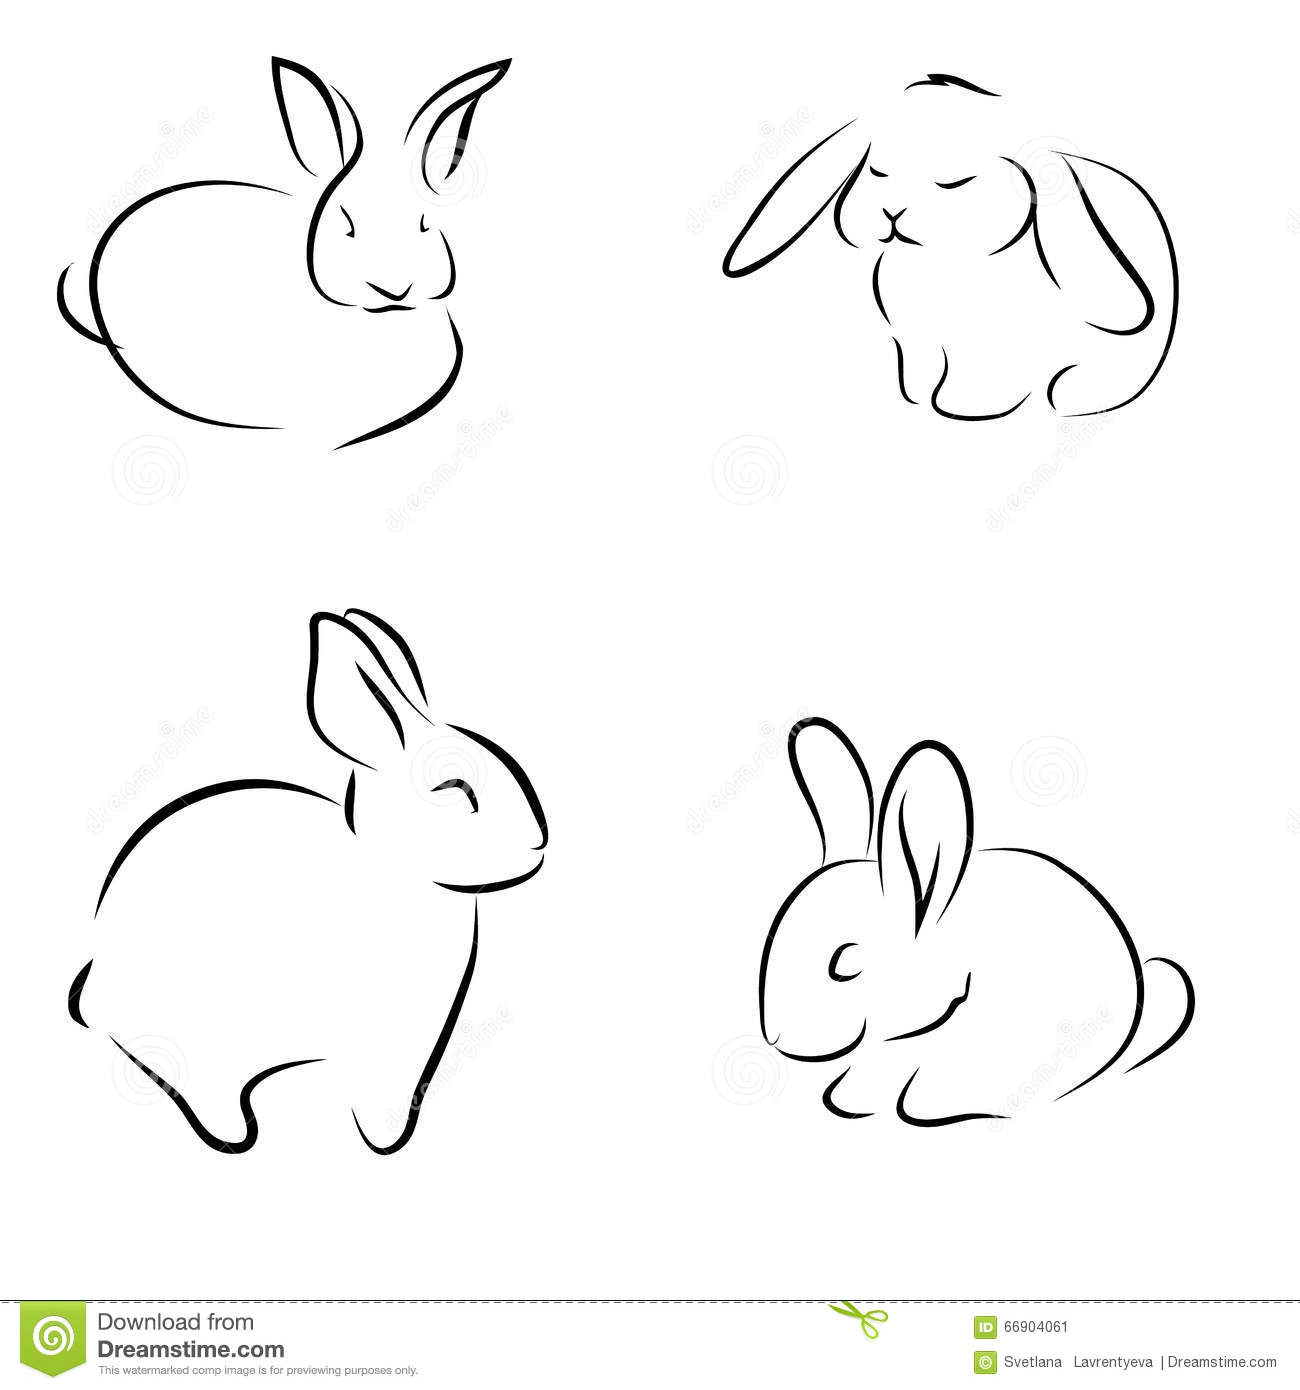 Wellington new zealand likewise 5 additionally Stock Illustration Little Bunny Set Sketch Drawings Rabbits Set Vector Image66904061 additionally Stock Images Cheetah Muzzle Contour Image S Image35578294 besides River otters. on black fur